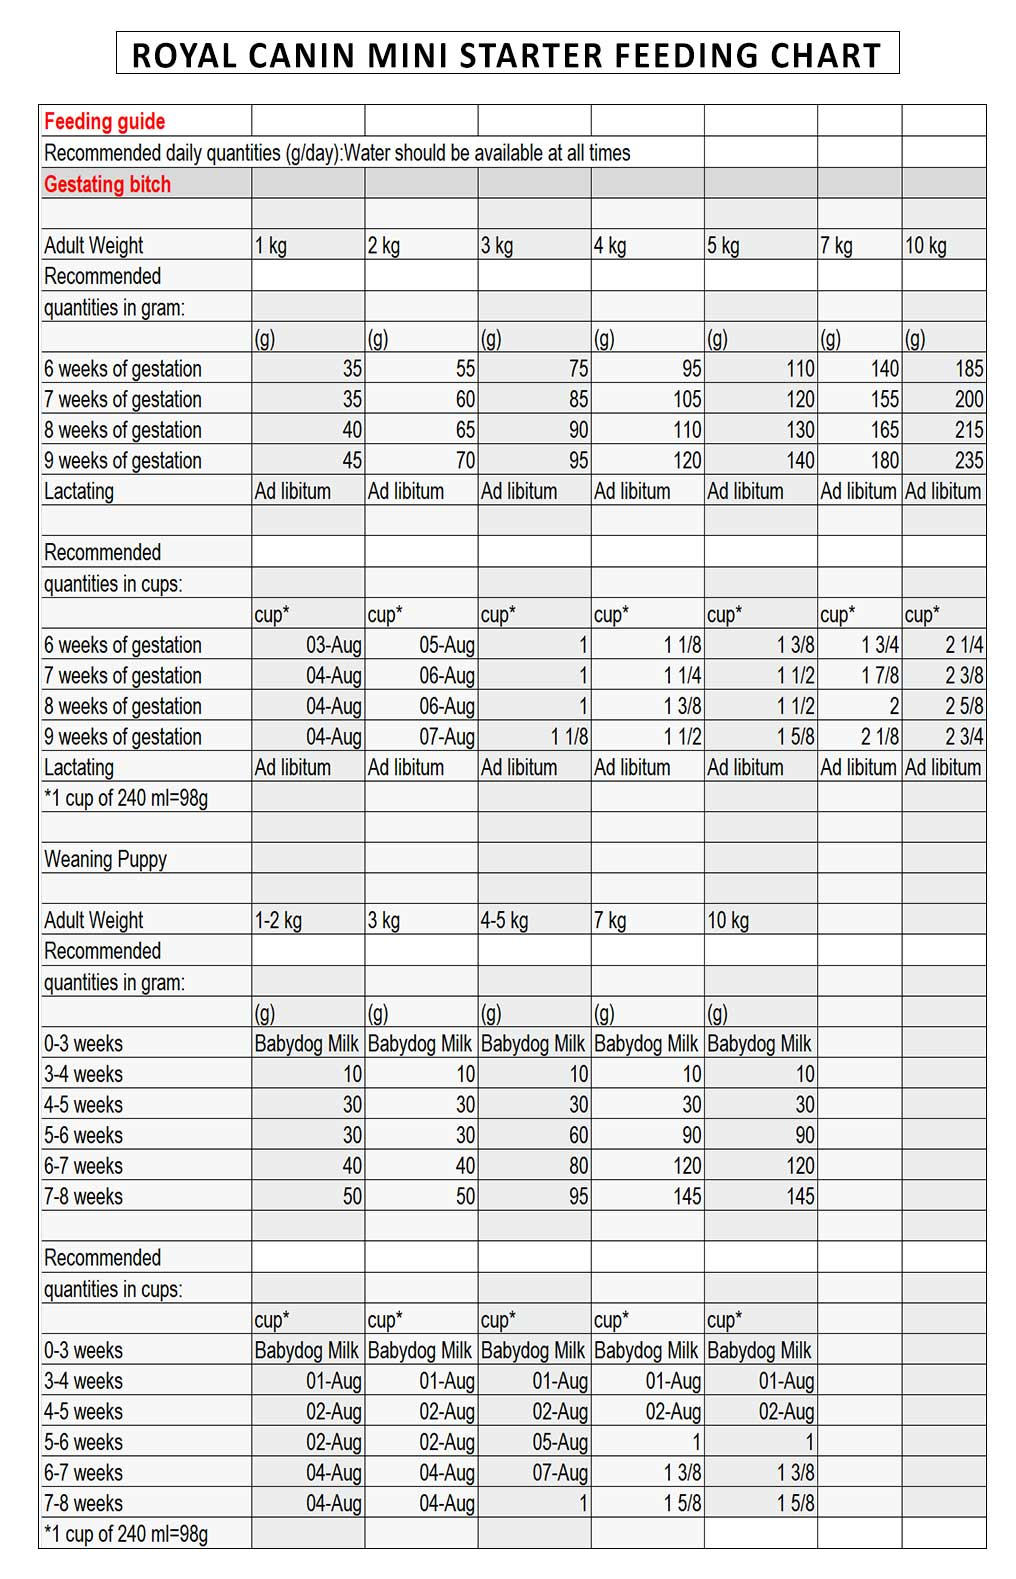 Royal-canin-Mini-Starter-feeding-chart